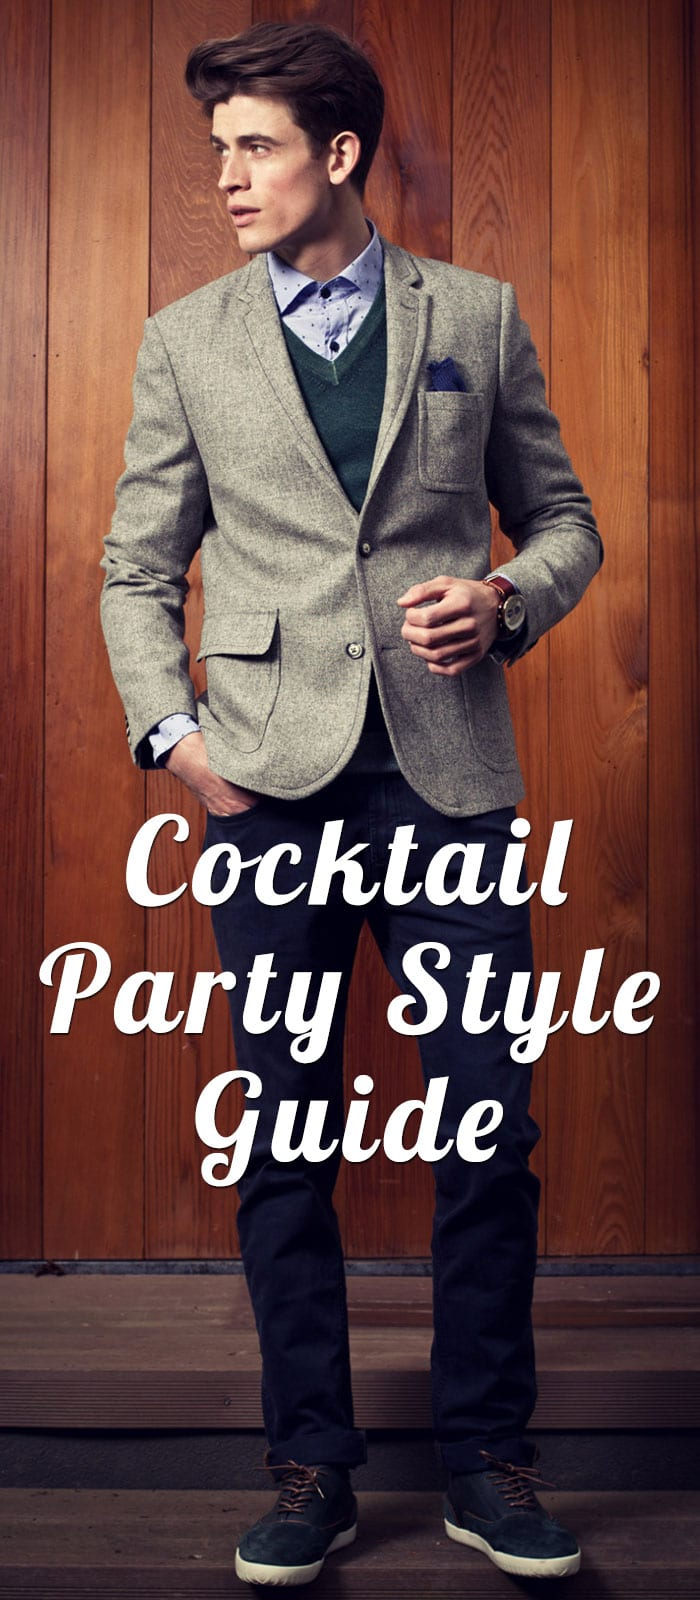 Cocktail Party Style Guide – Outfit Ideas, Tips, Guide, Images, Footwear, Etc